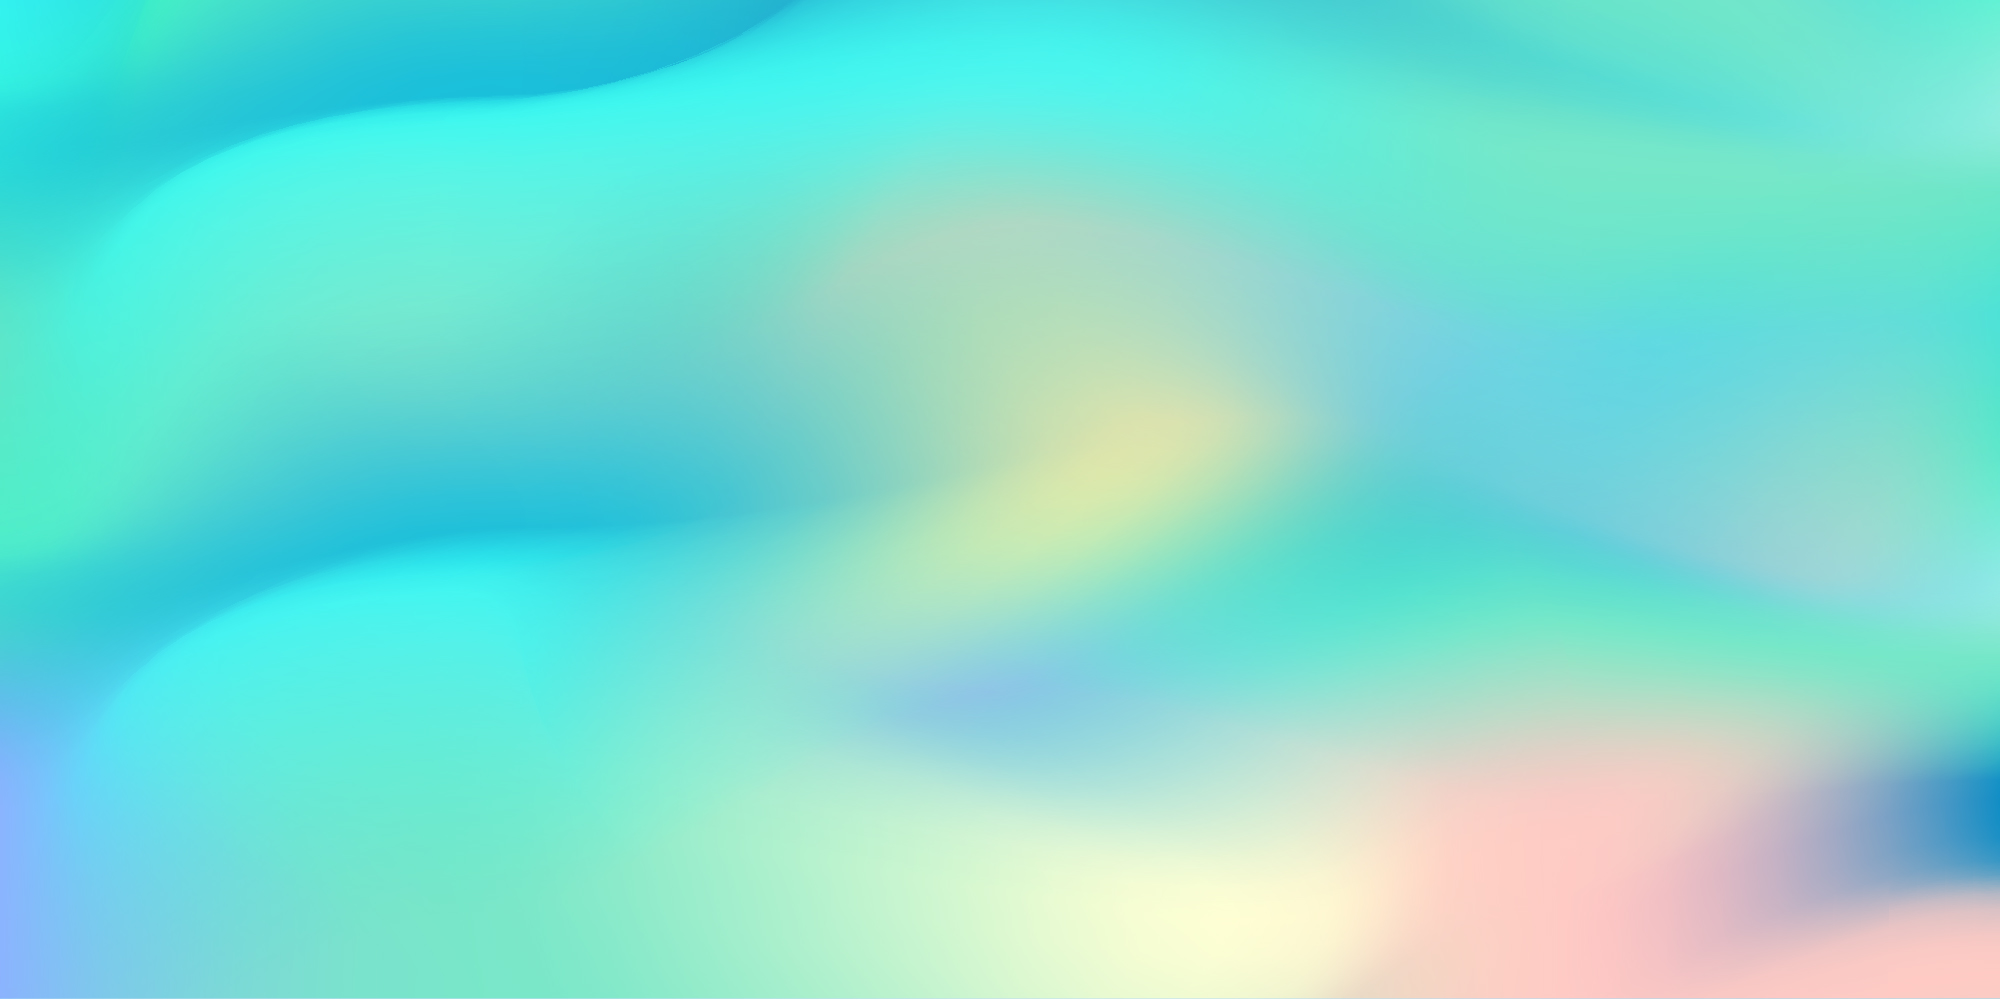 Dreamforce gradient pattern